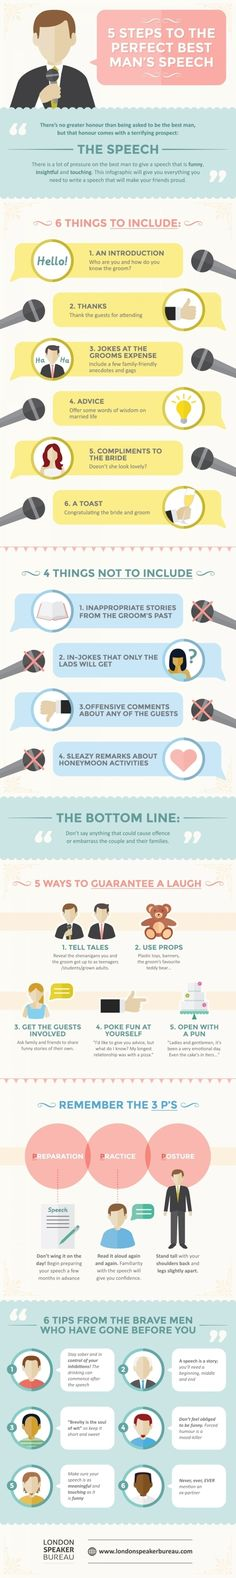 How to Instantly Give an Awesome Best Man Speech